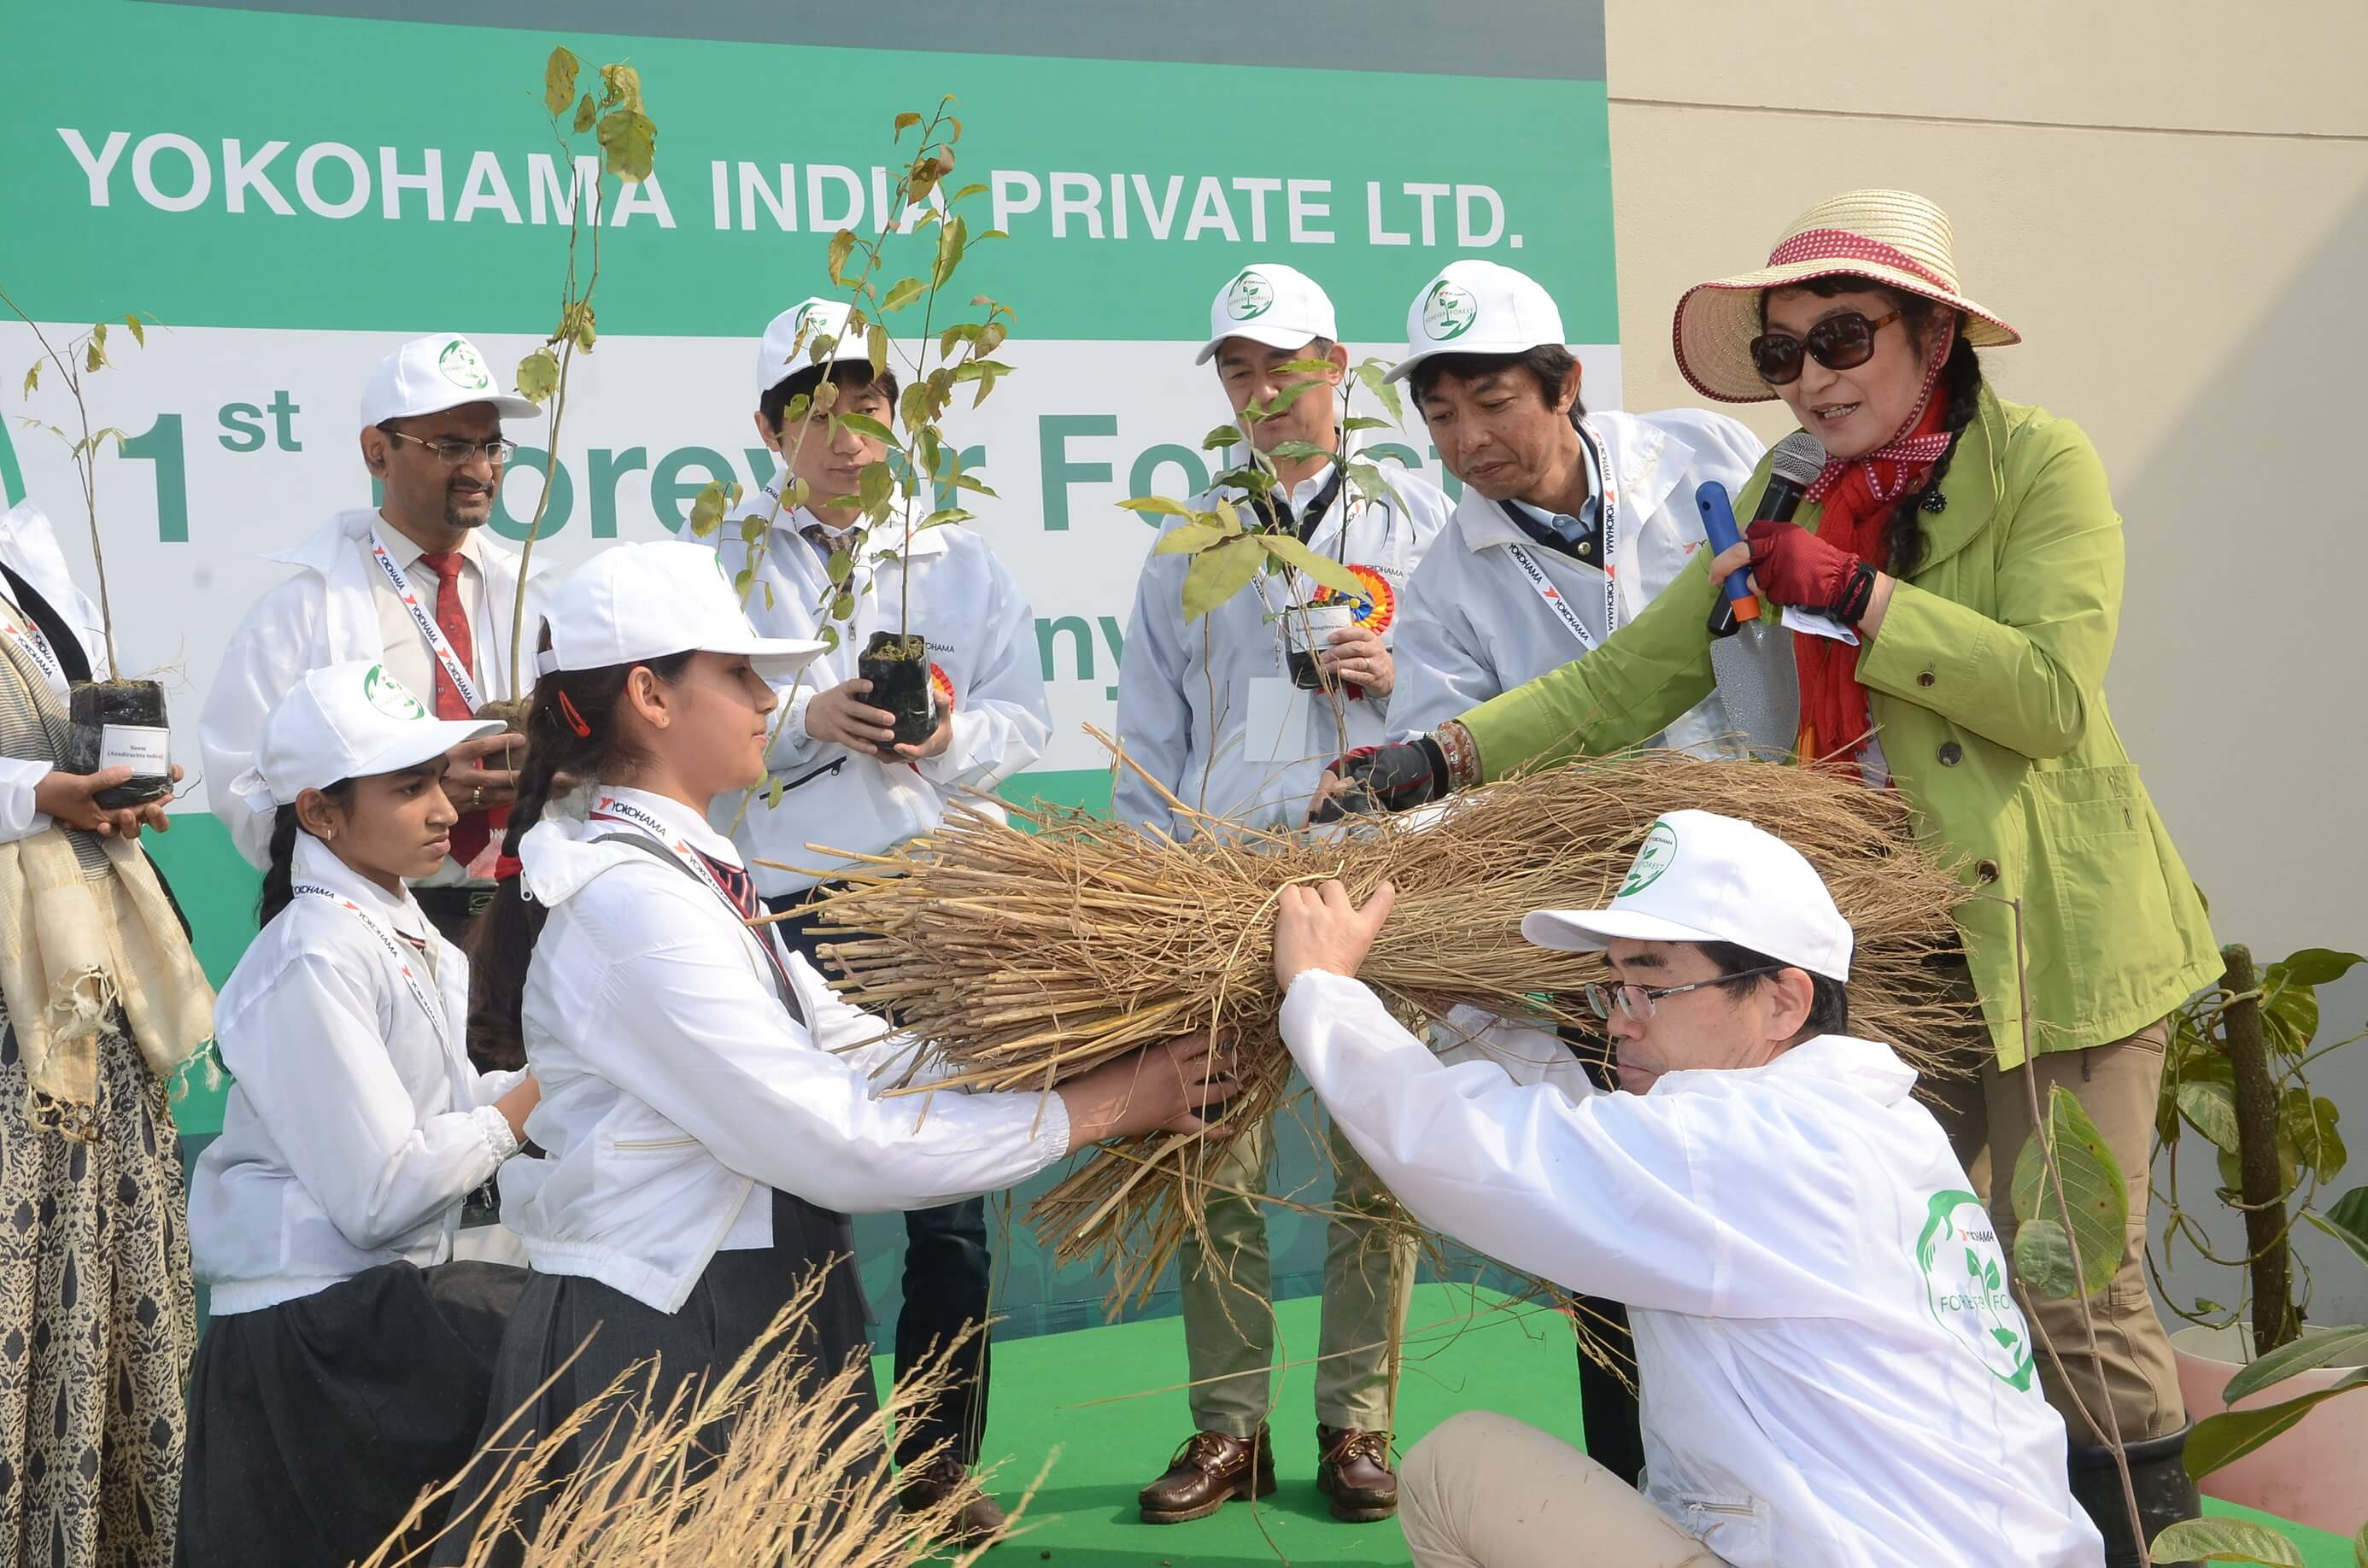 Yokohama's Forever Forest project comes to India